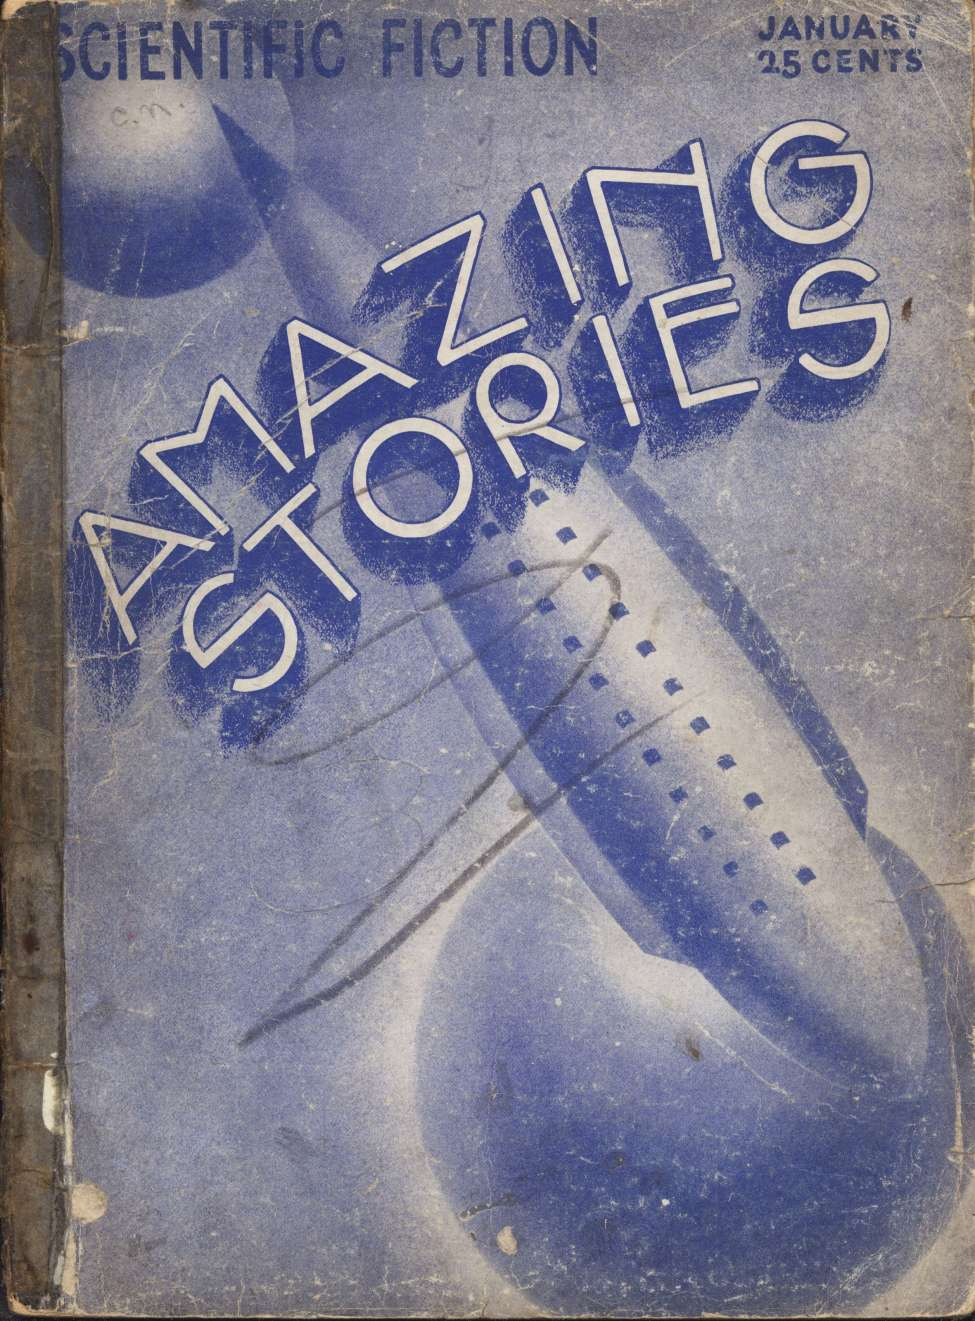 Comic Book Cover For Amazing Stories v07 10 - The Treasure of the Golden God - A. Hyatt Verrill